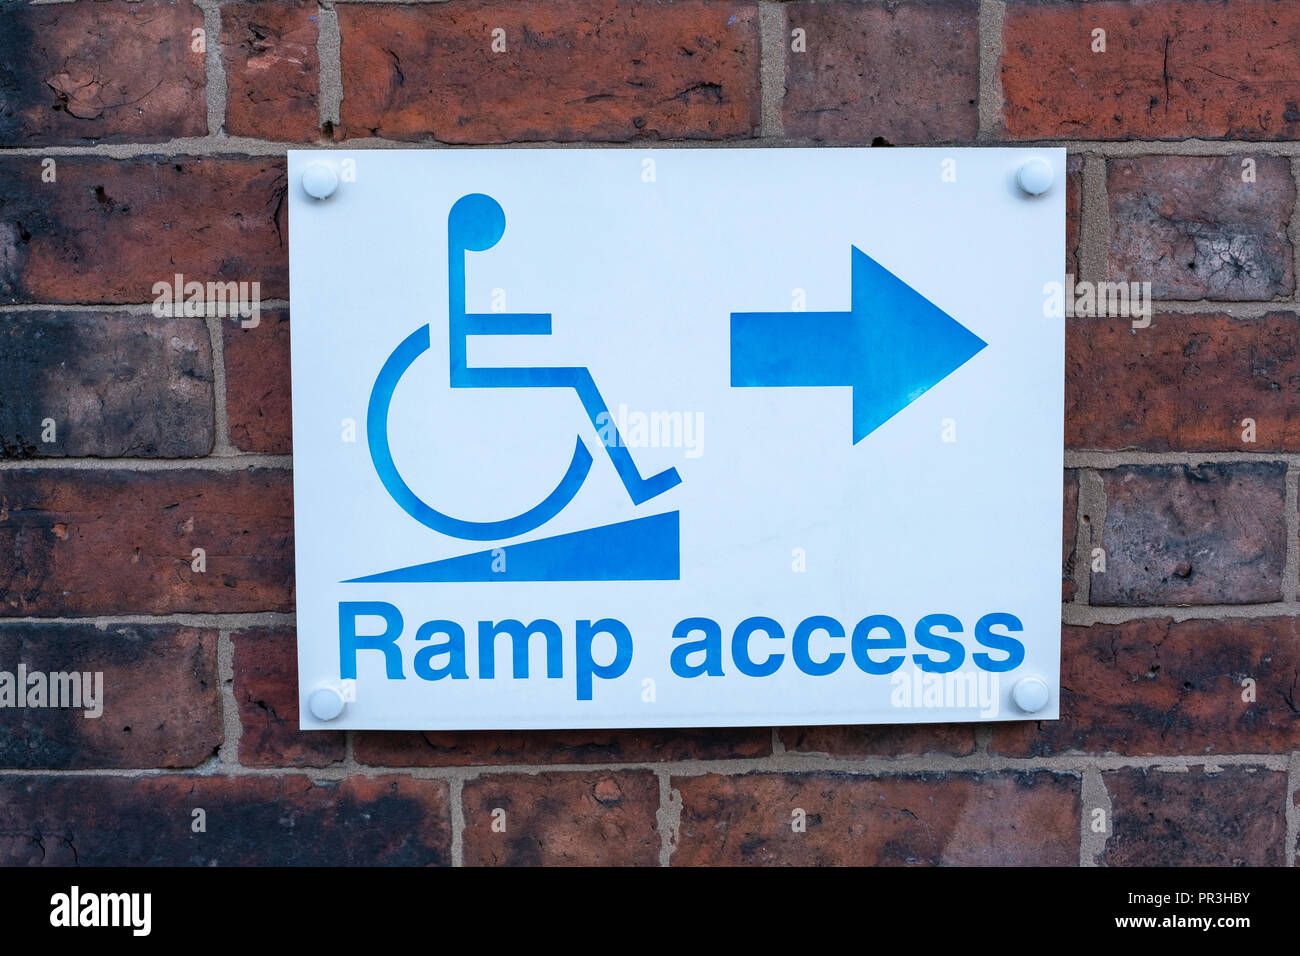 Ramp access sign on outside wall UK - Stock Image